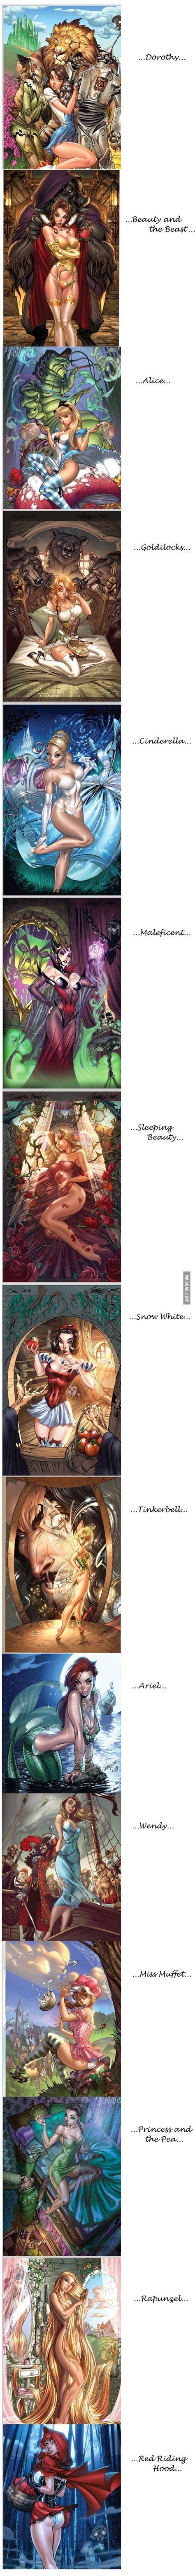 *DISCLAMIER* Saving because wtf??? This is why we need feminism, cause someone felt the need to take the time and effort to draw perfectly innocent Disney characters with huge boobs and asses, just to make them look sexy. Like why???